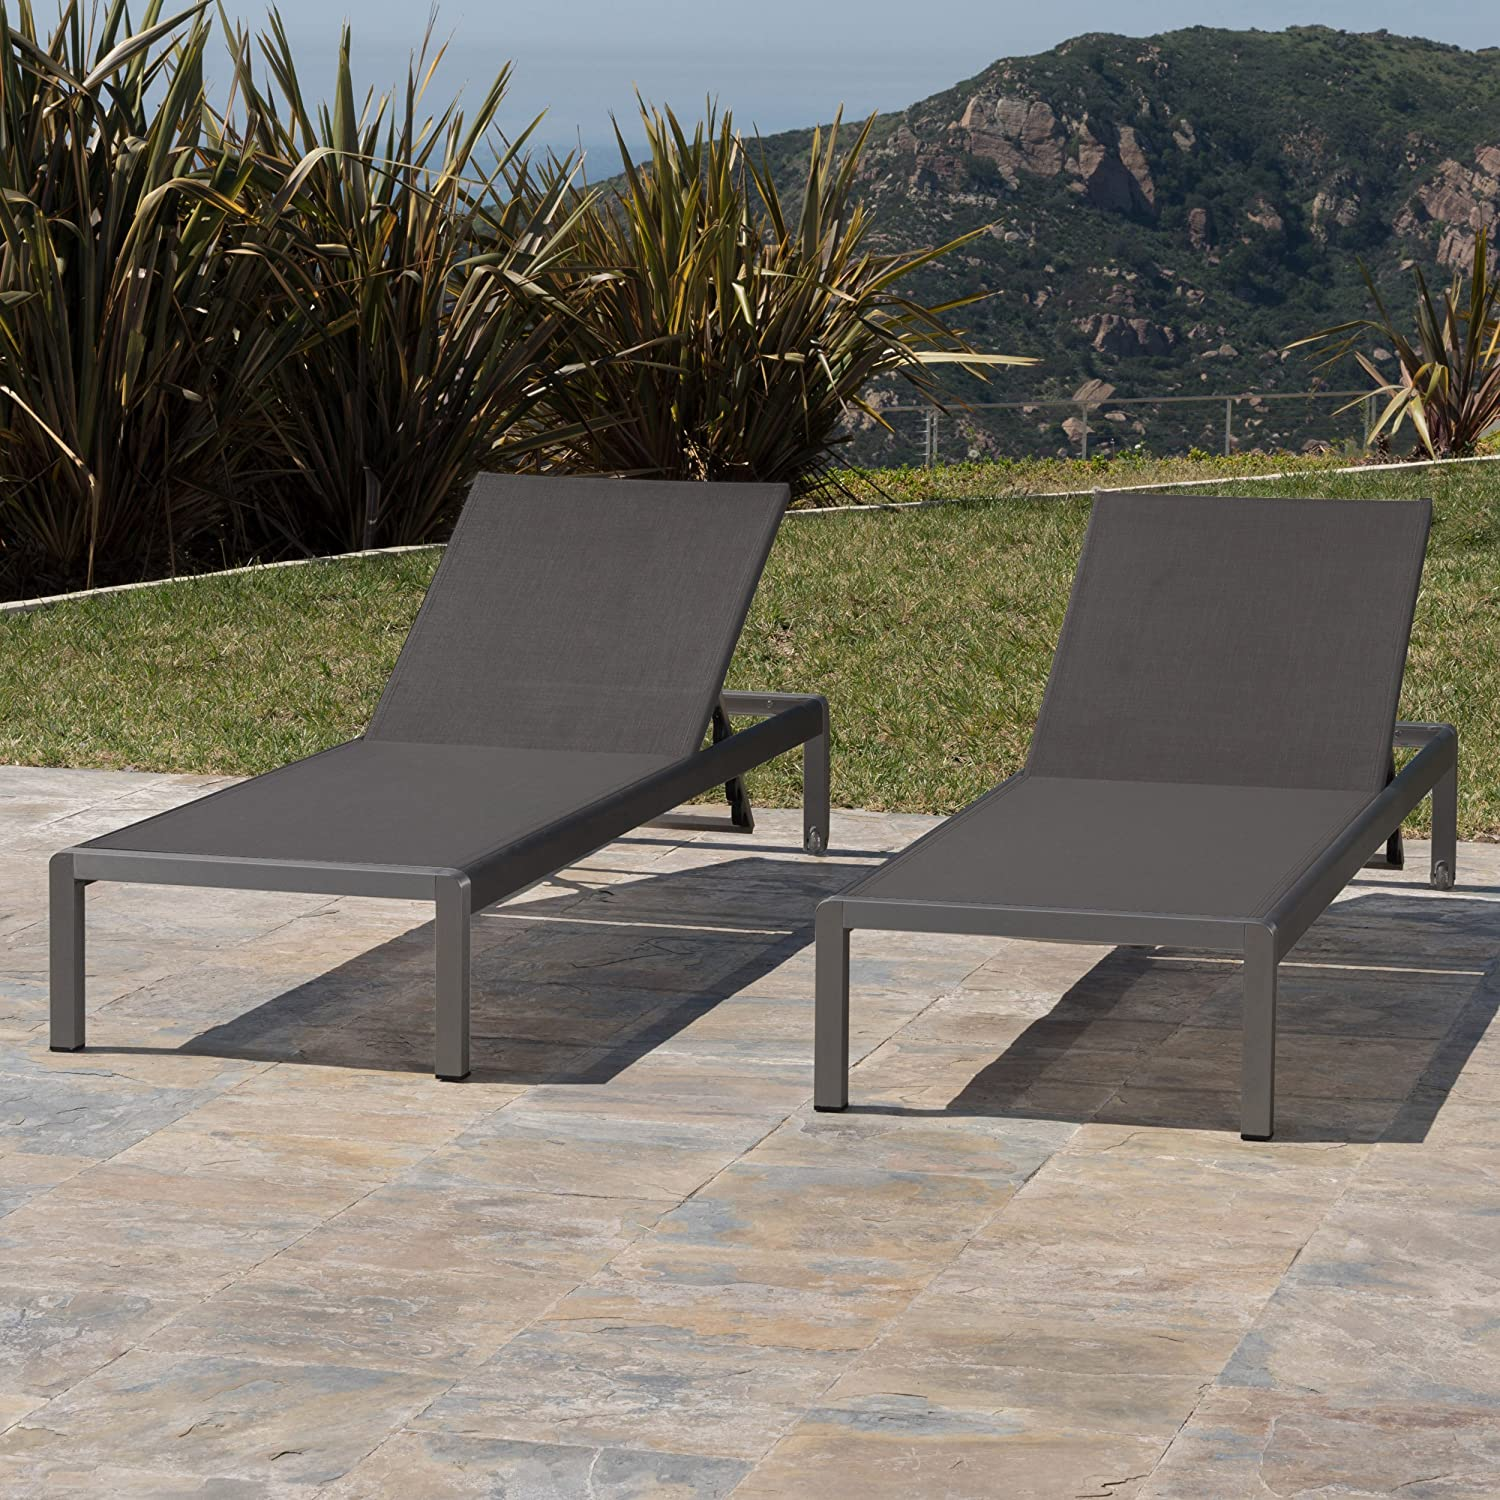 Crested Bay Patio Furniture Outdoor Mesh Chaise Lounge